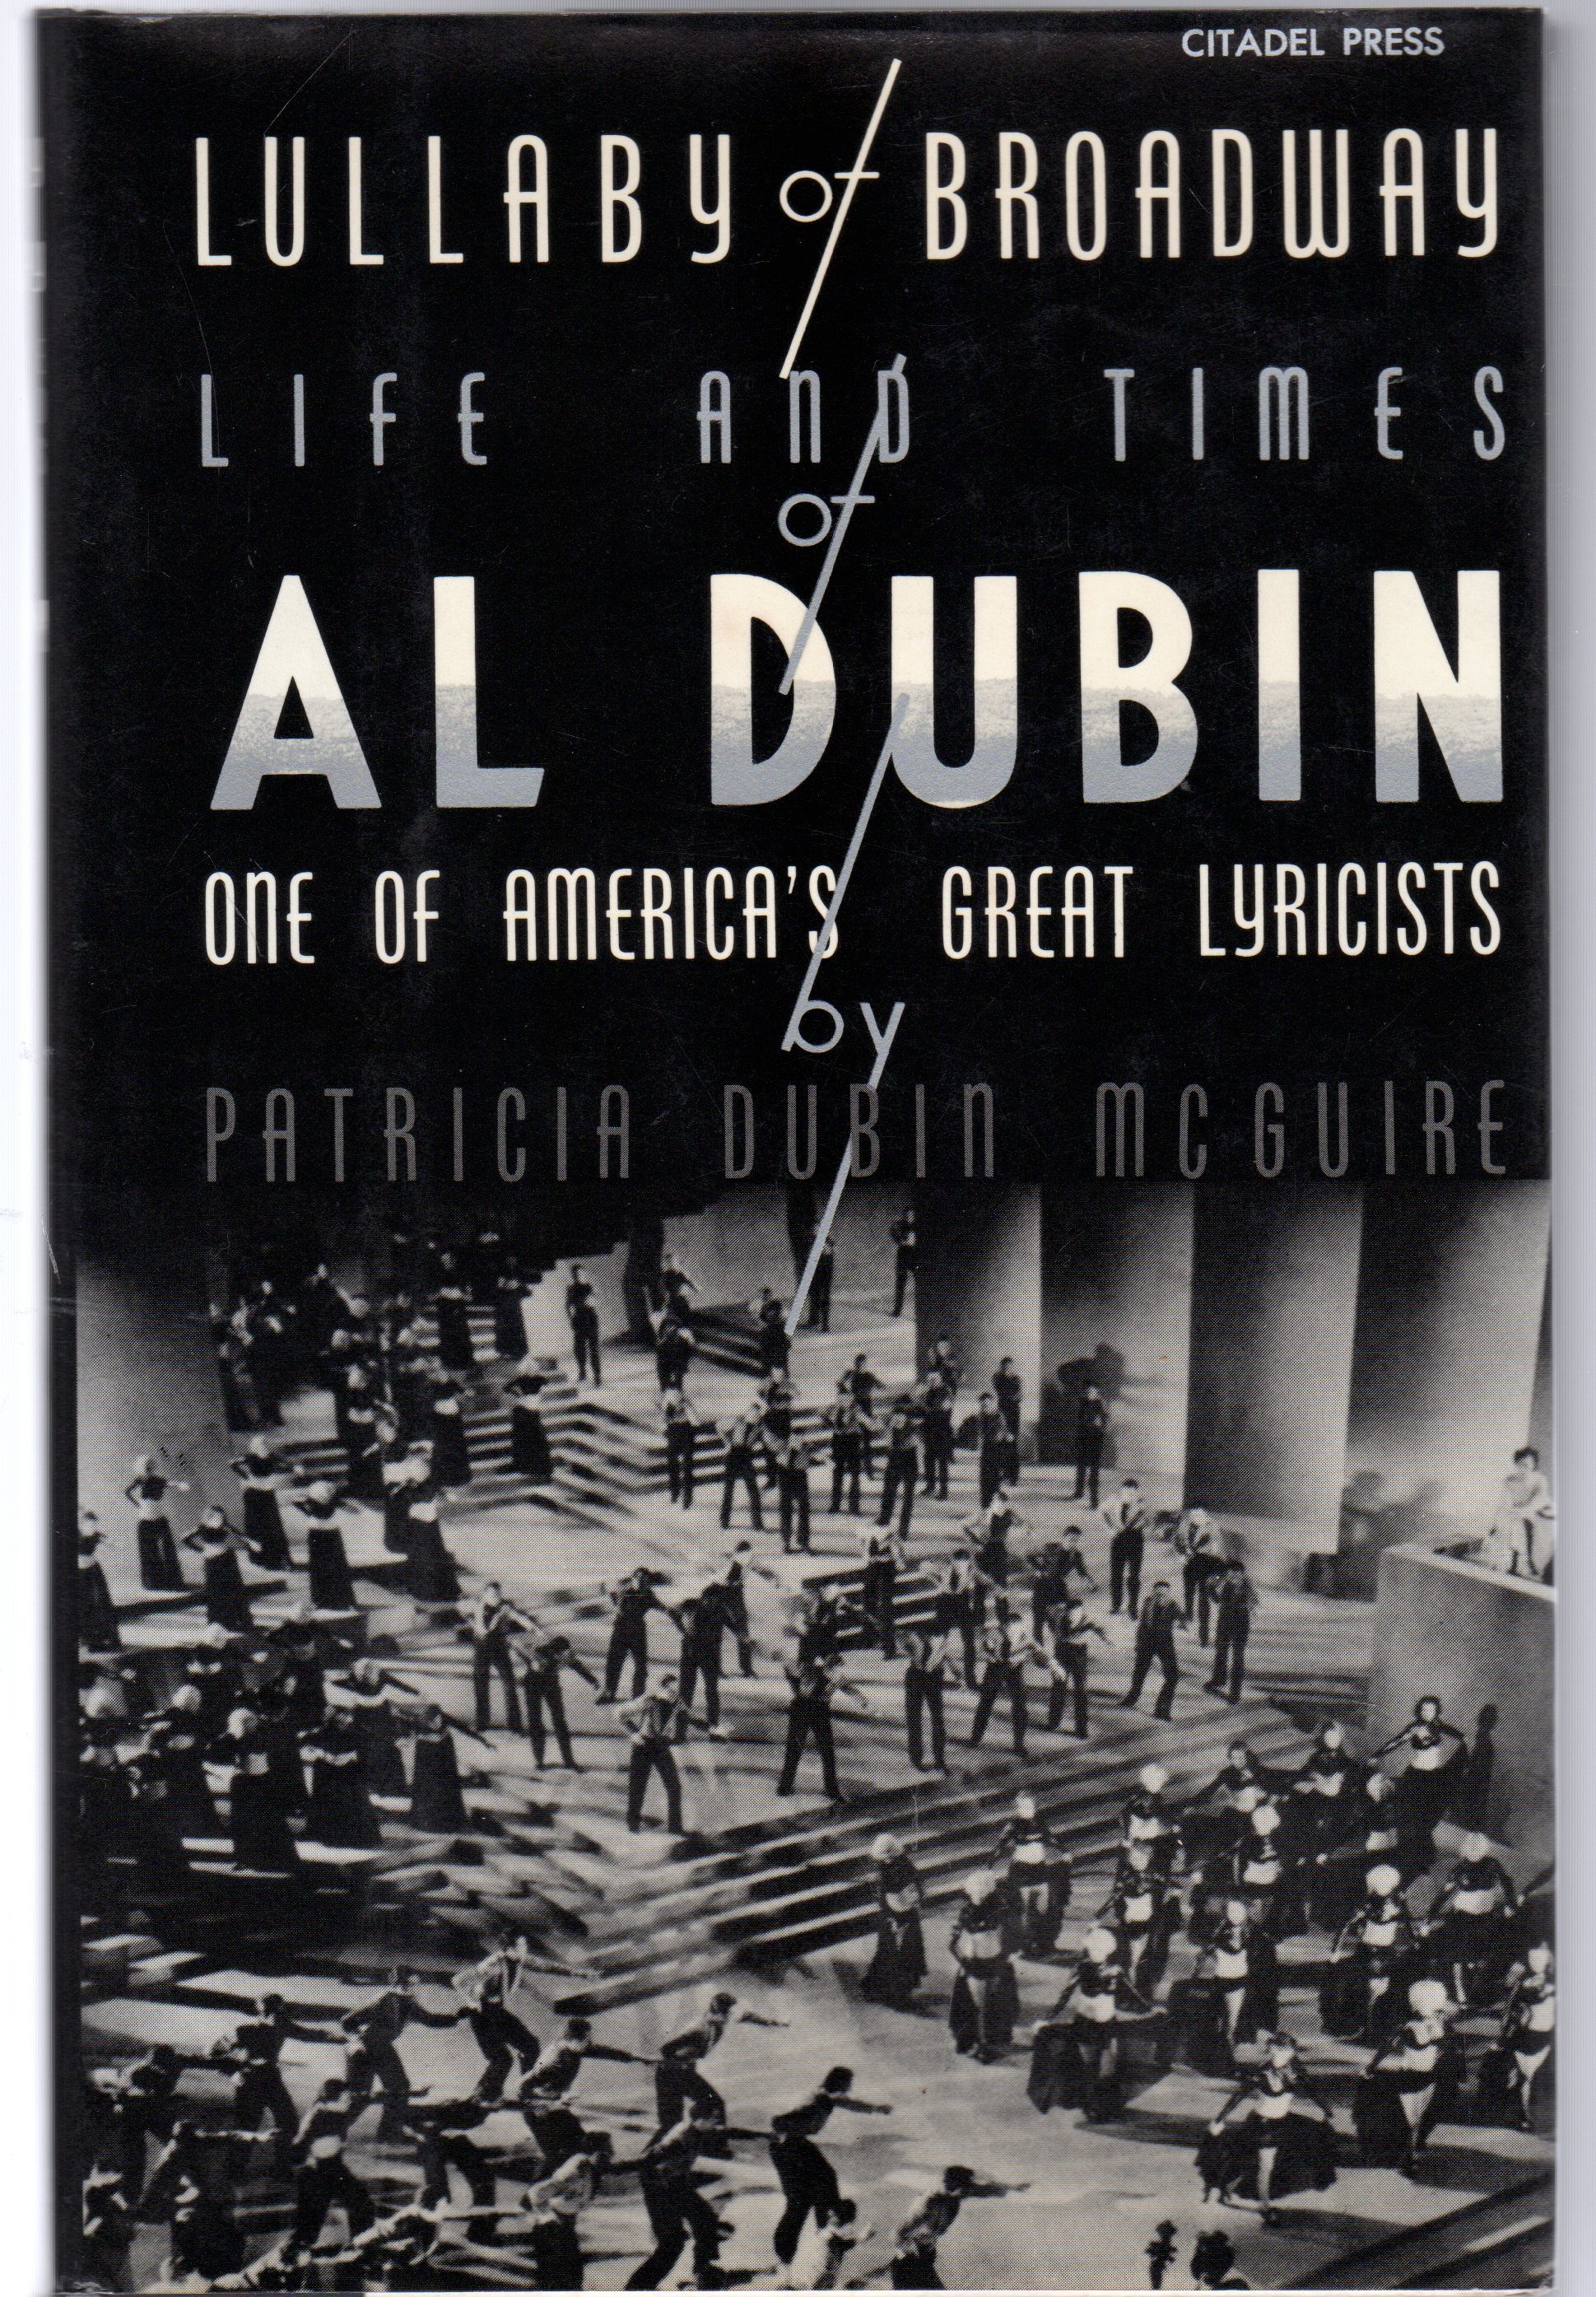 Image for Lullaby of Broadway : Life and Times of Al Dubin, One of America's Great Lyricists